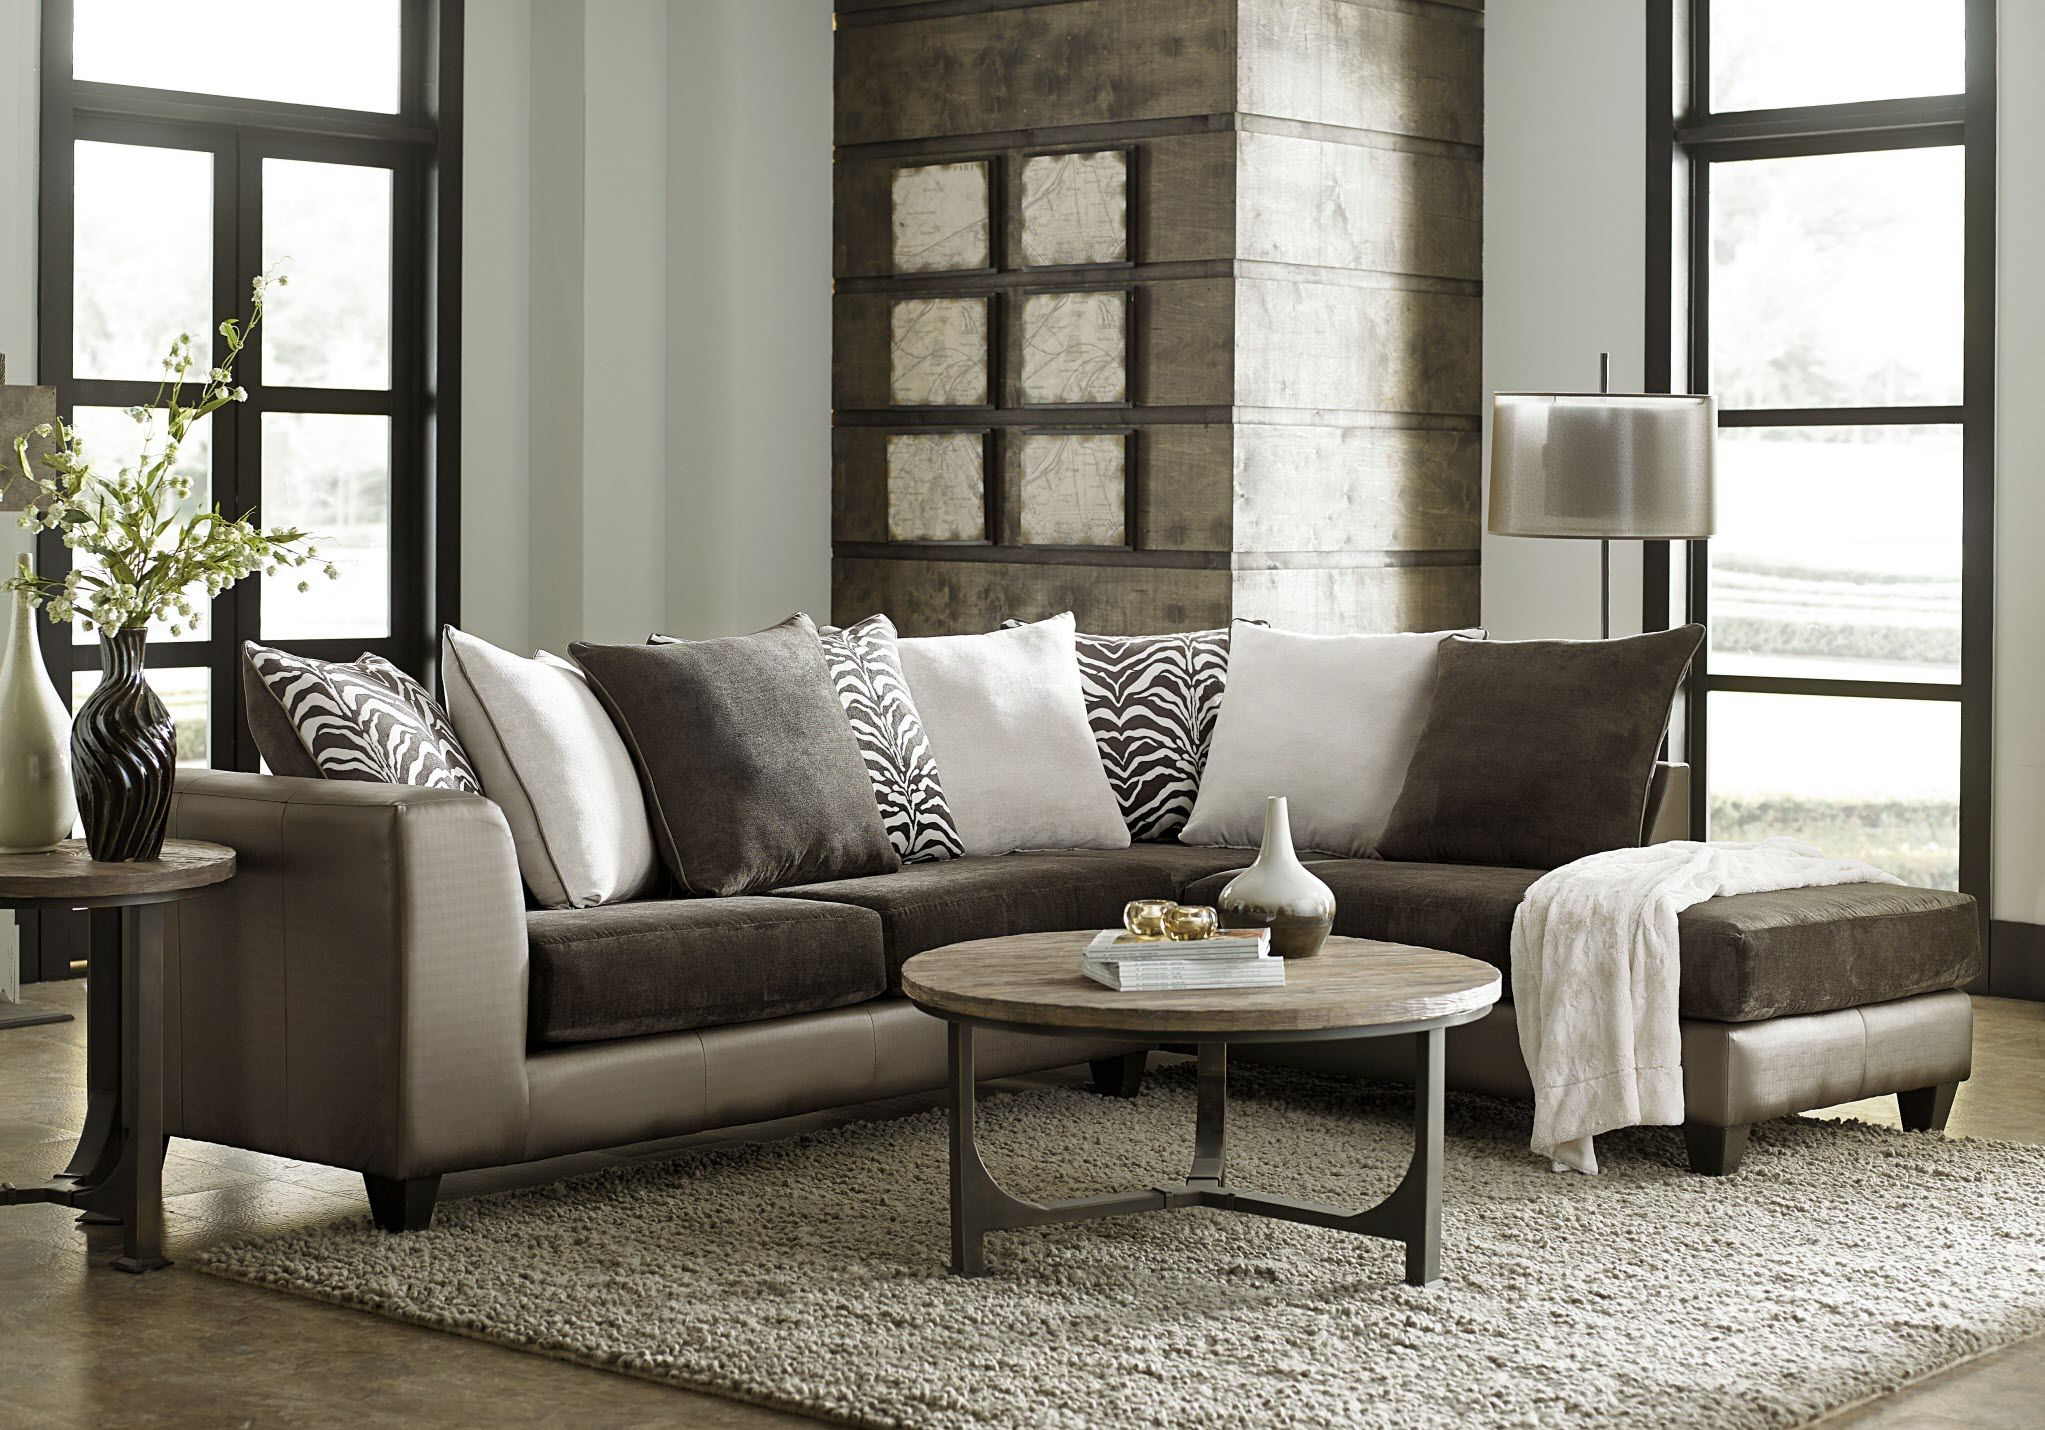 dark surprising full sofas gray sectional grey with sofa of ideas lounge and darcy reclinerlight grayonal size charcoal sofagrey picture chaise